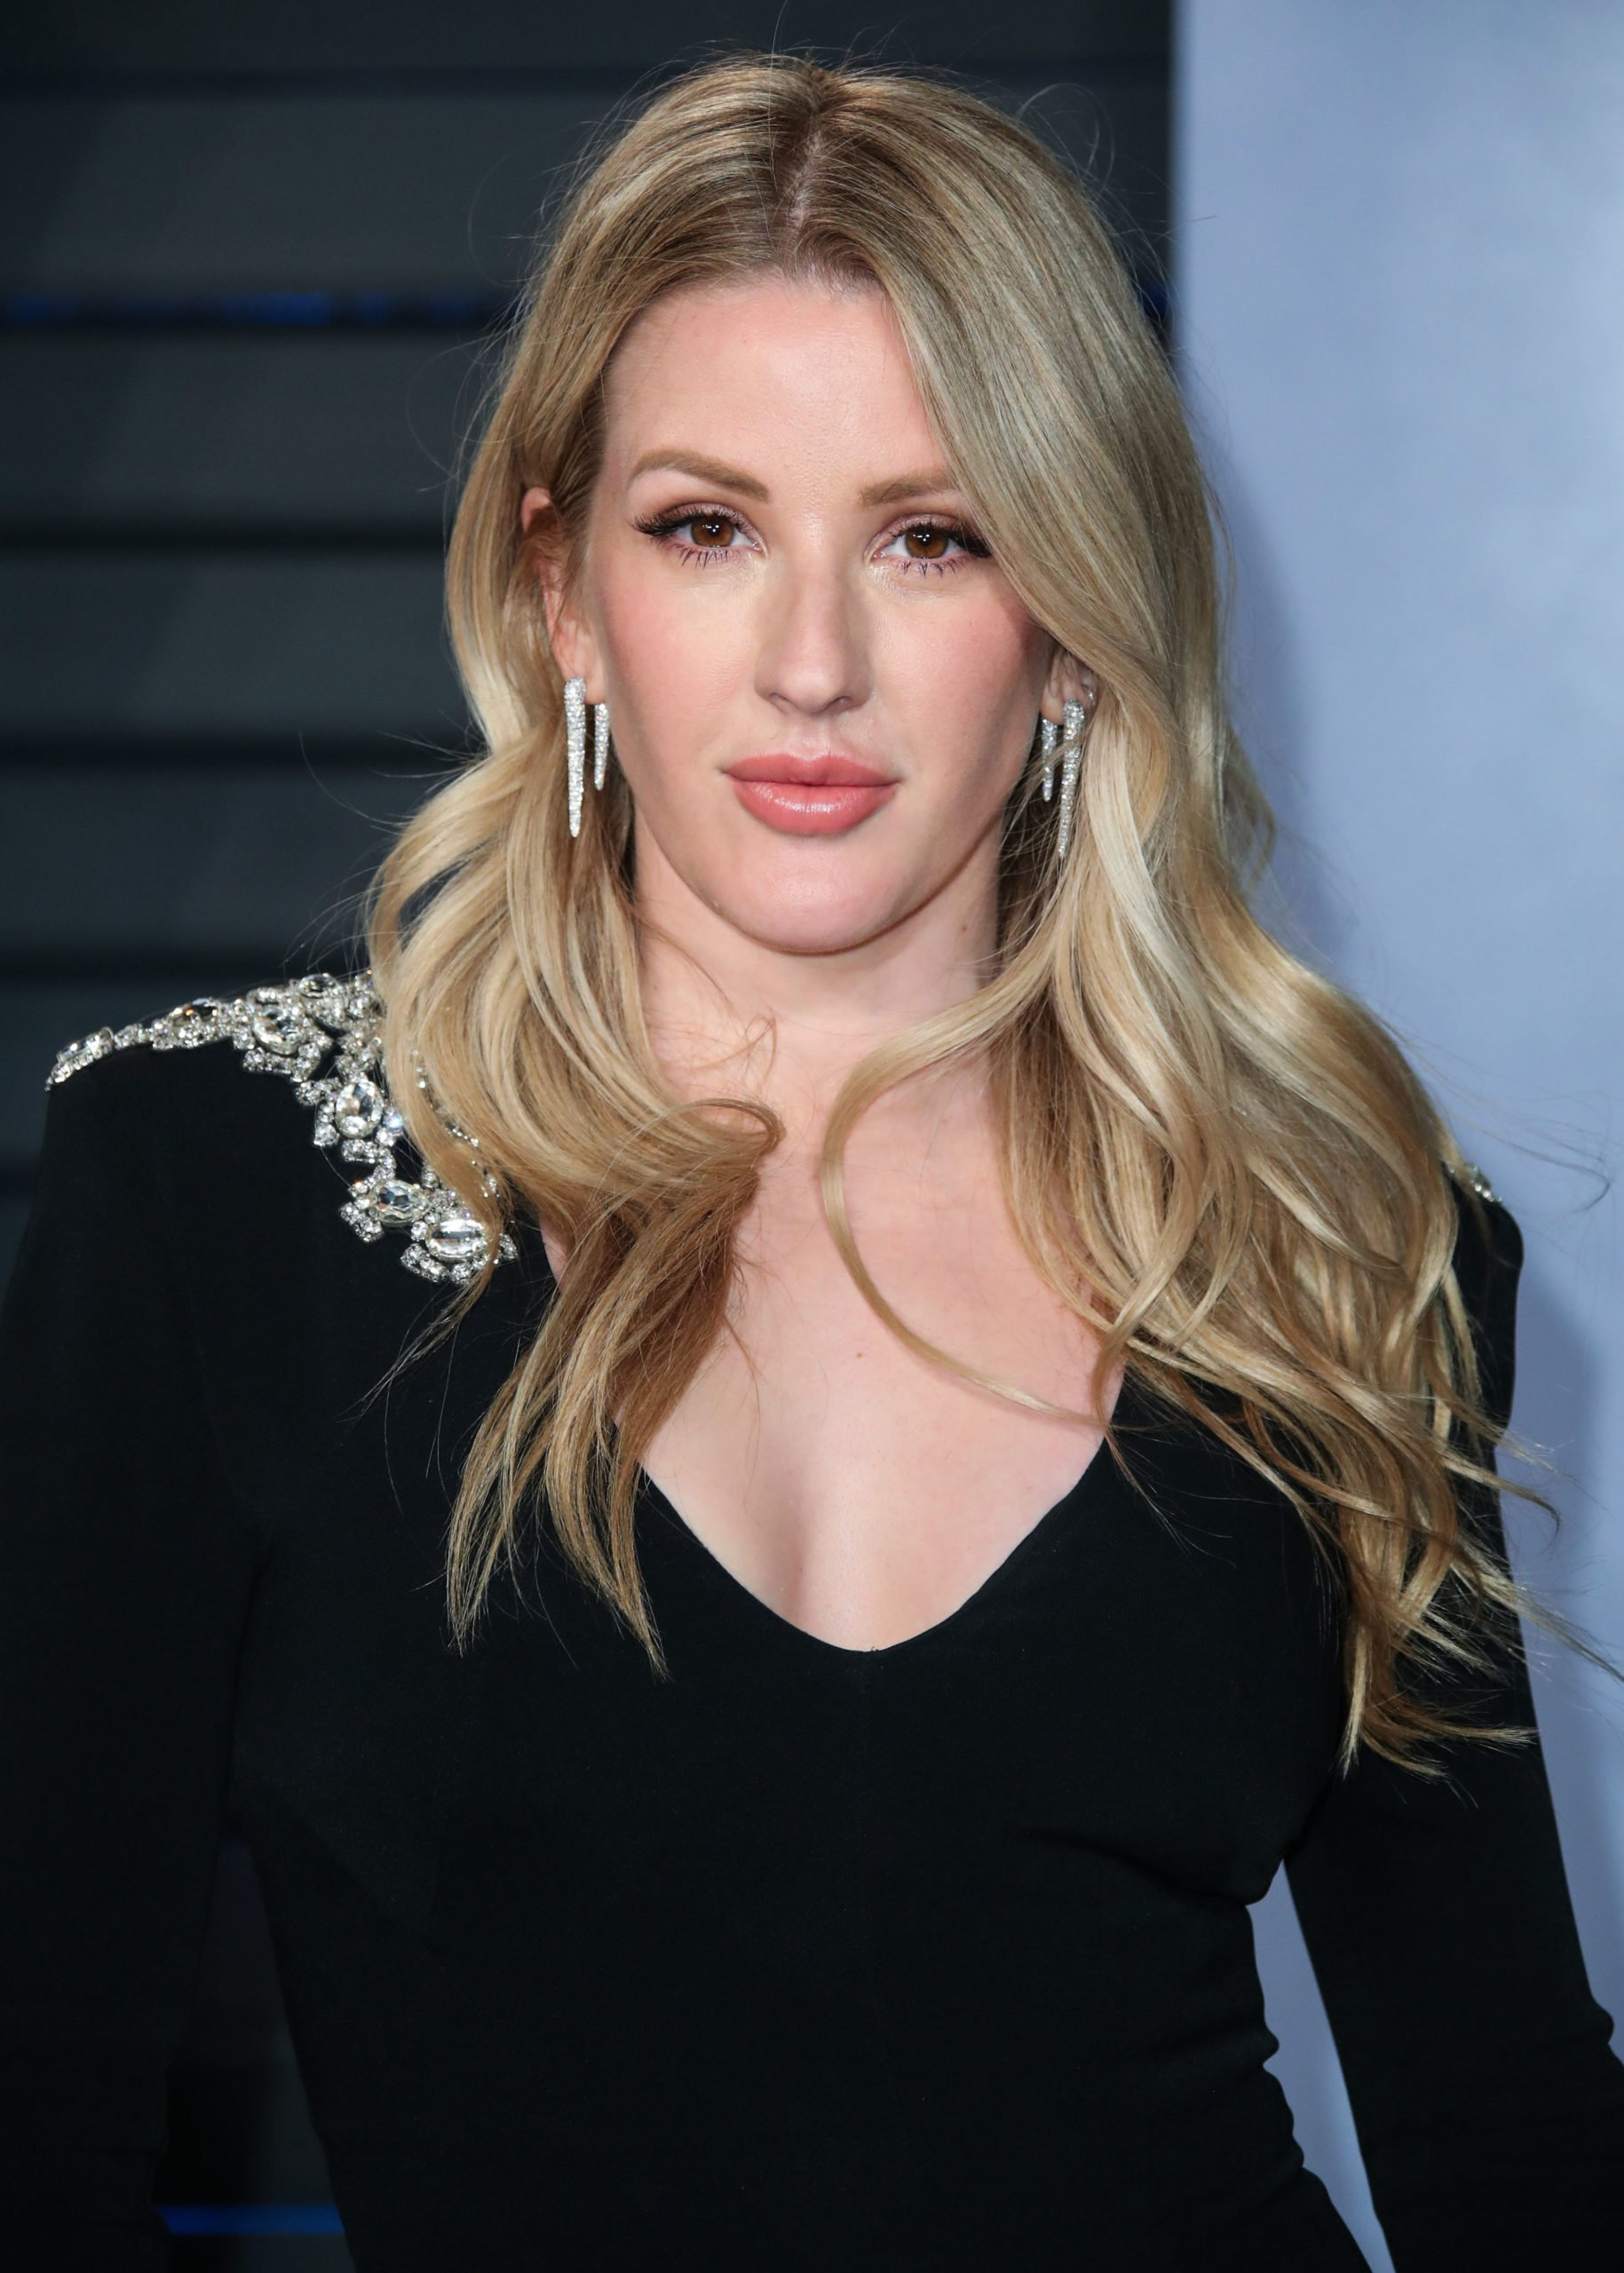 Ellie Goulding 'sometimes fasts up to 40 hours to reduce ...